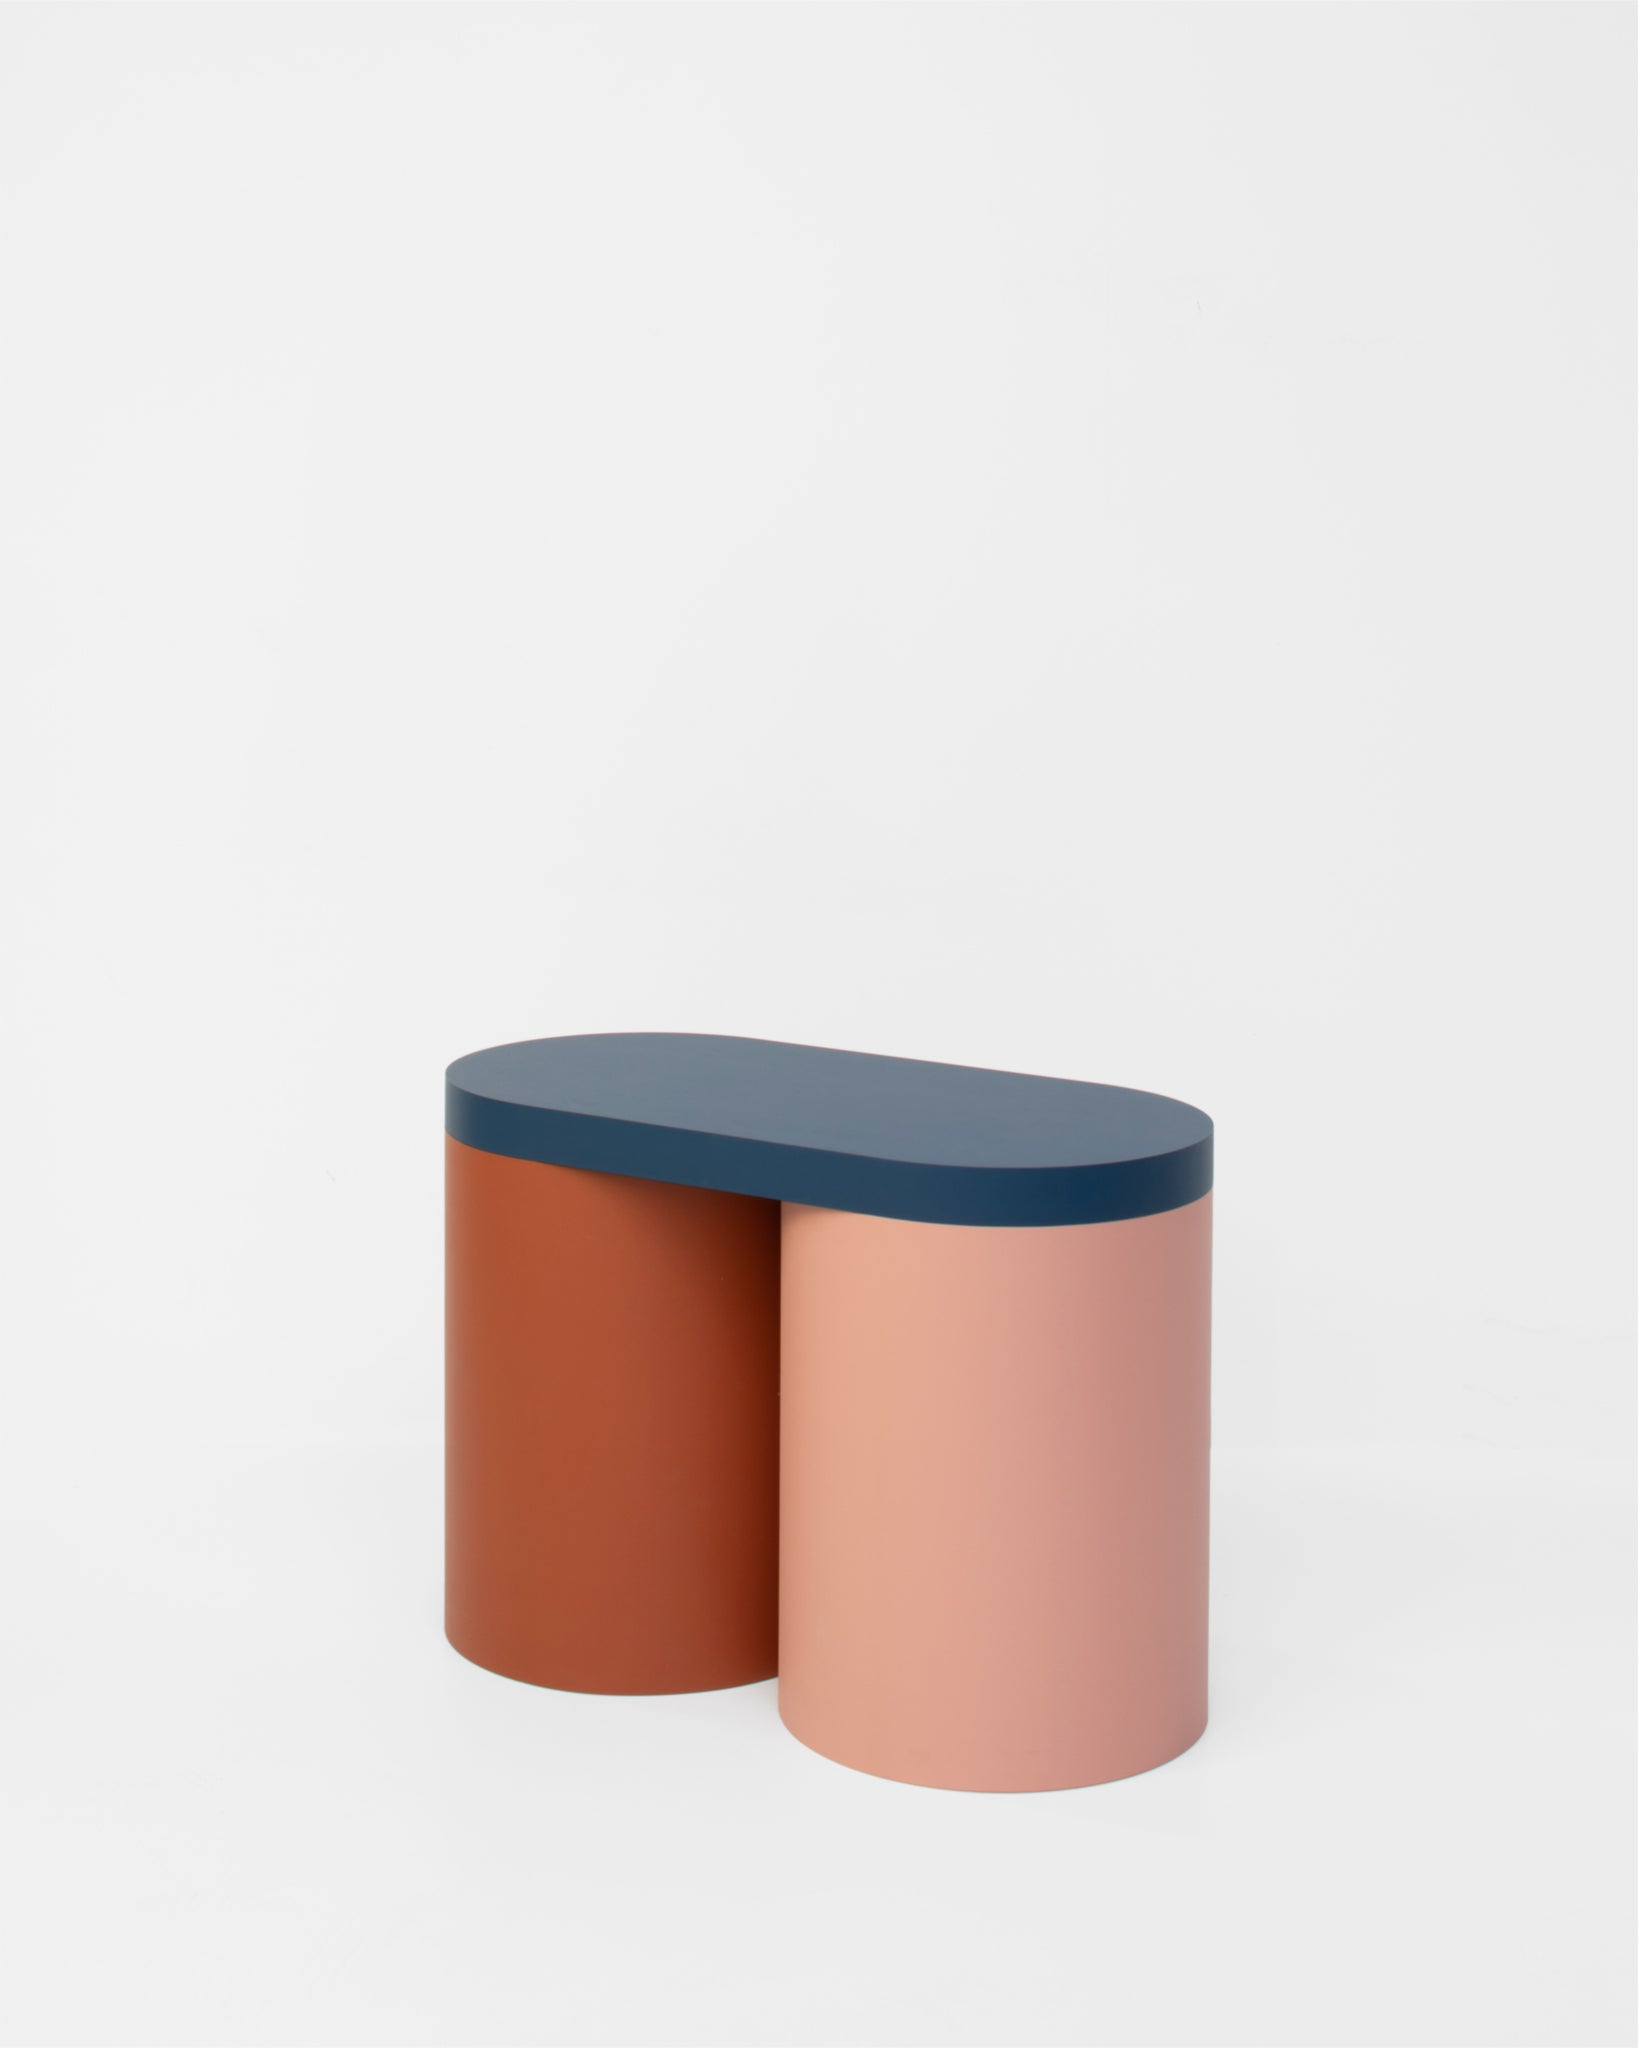 Colorful stool contemporary design lacquered wood blue brown